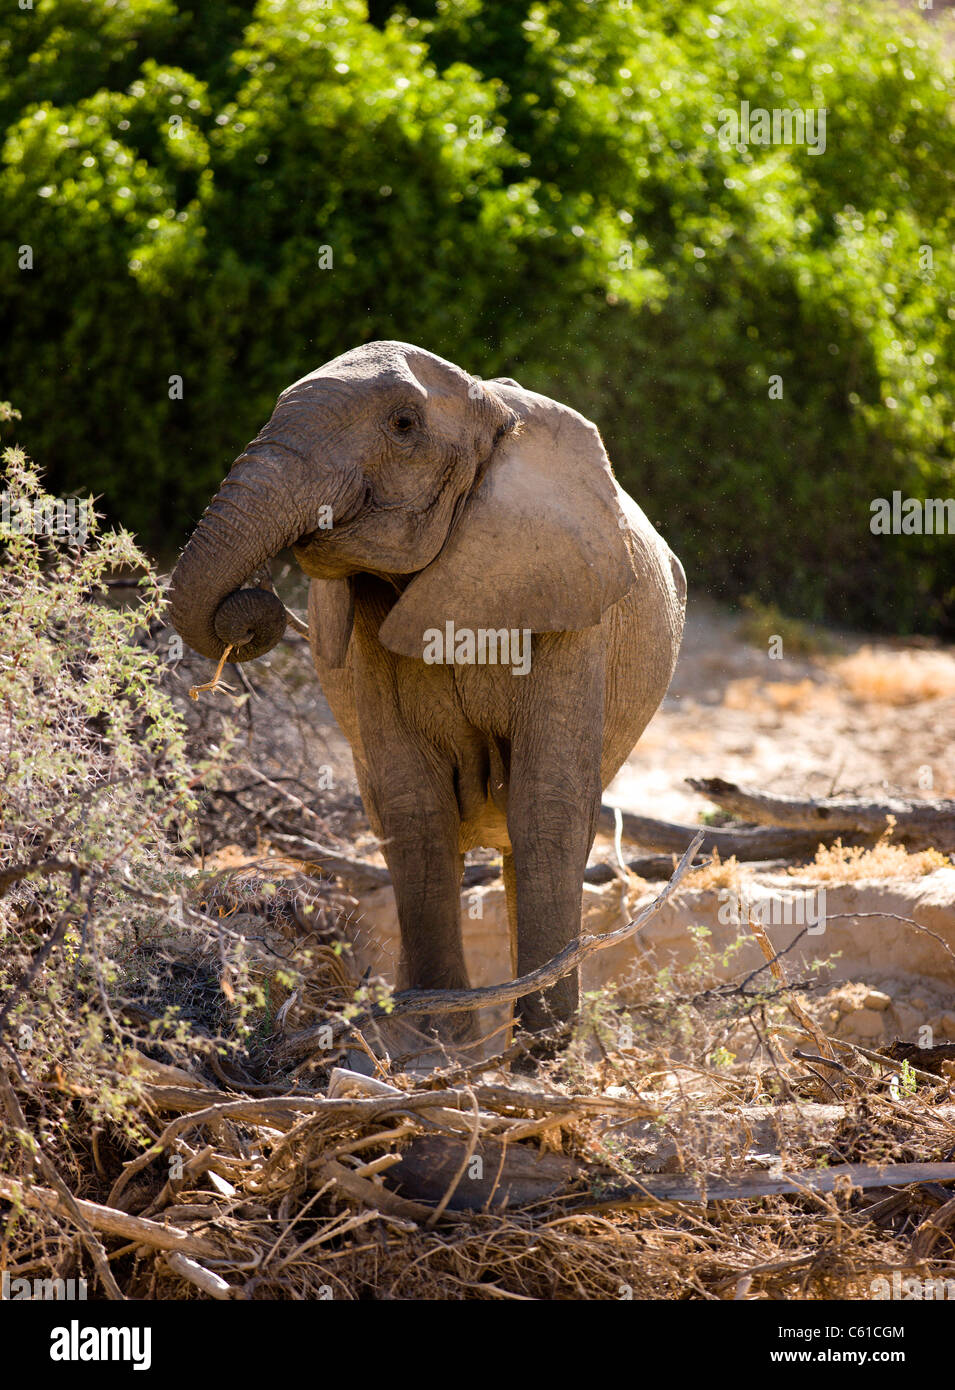 A desert adapted elephant eating bark. Hoarusib riverbed, Purros, Northern Kaokoland, Kaokoveld, Namibia. - Stock Image